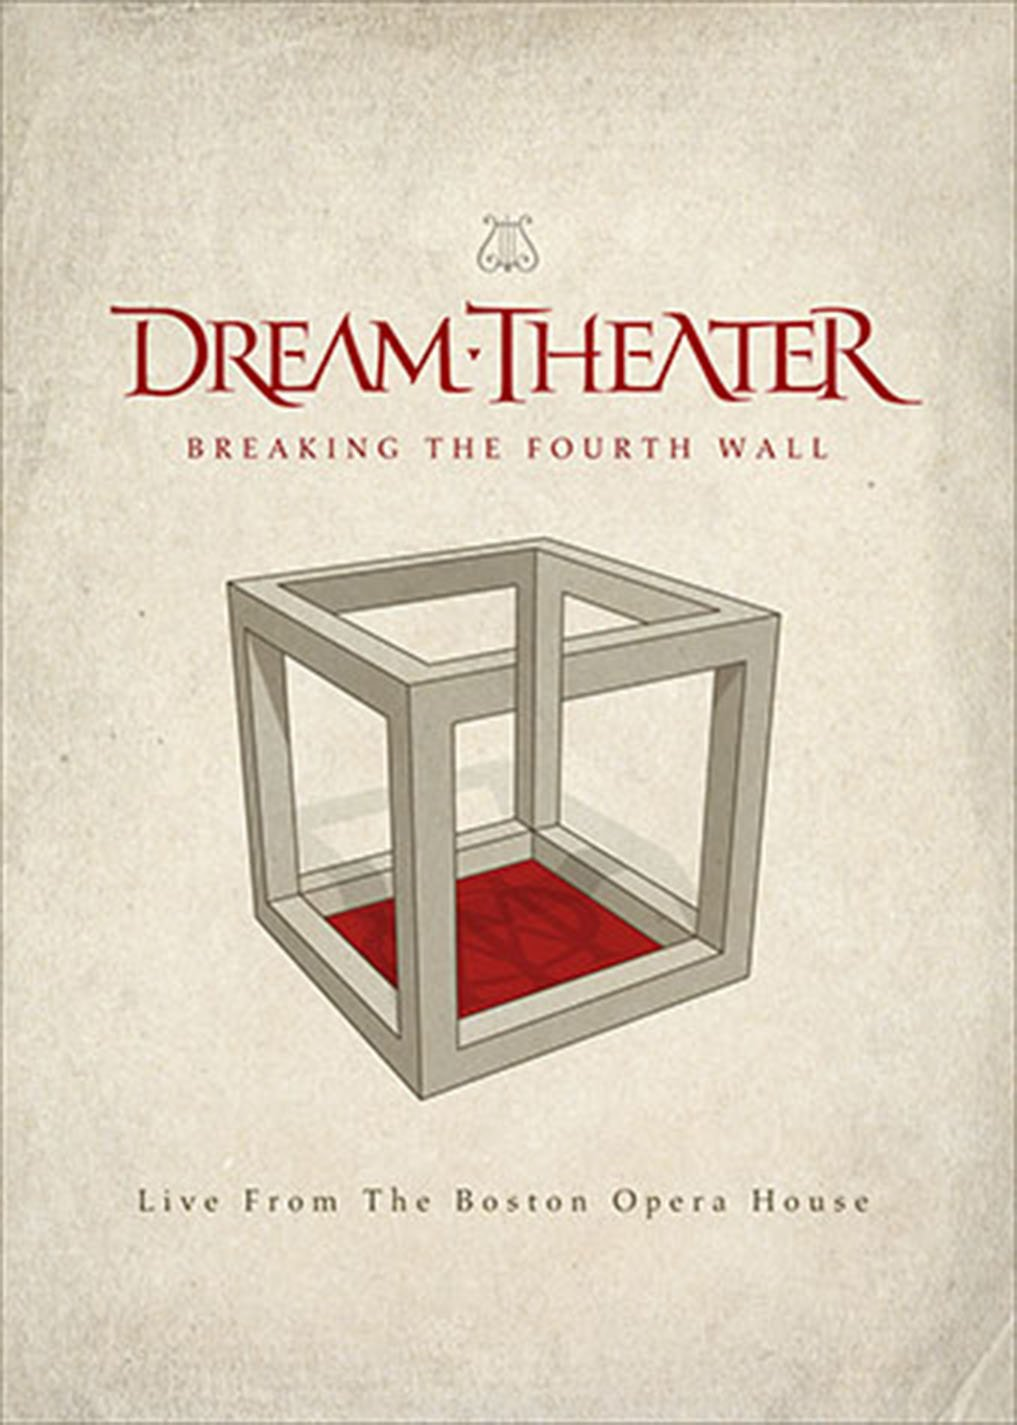 Blu-ray : Dream Theater - Breaking the Fourth Wall (Live from Boston Opera) (Blu-ray)